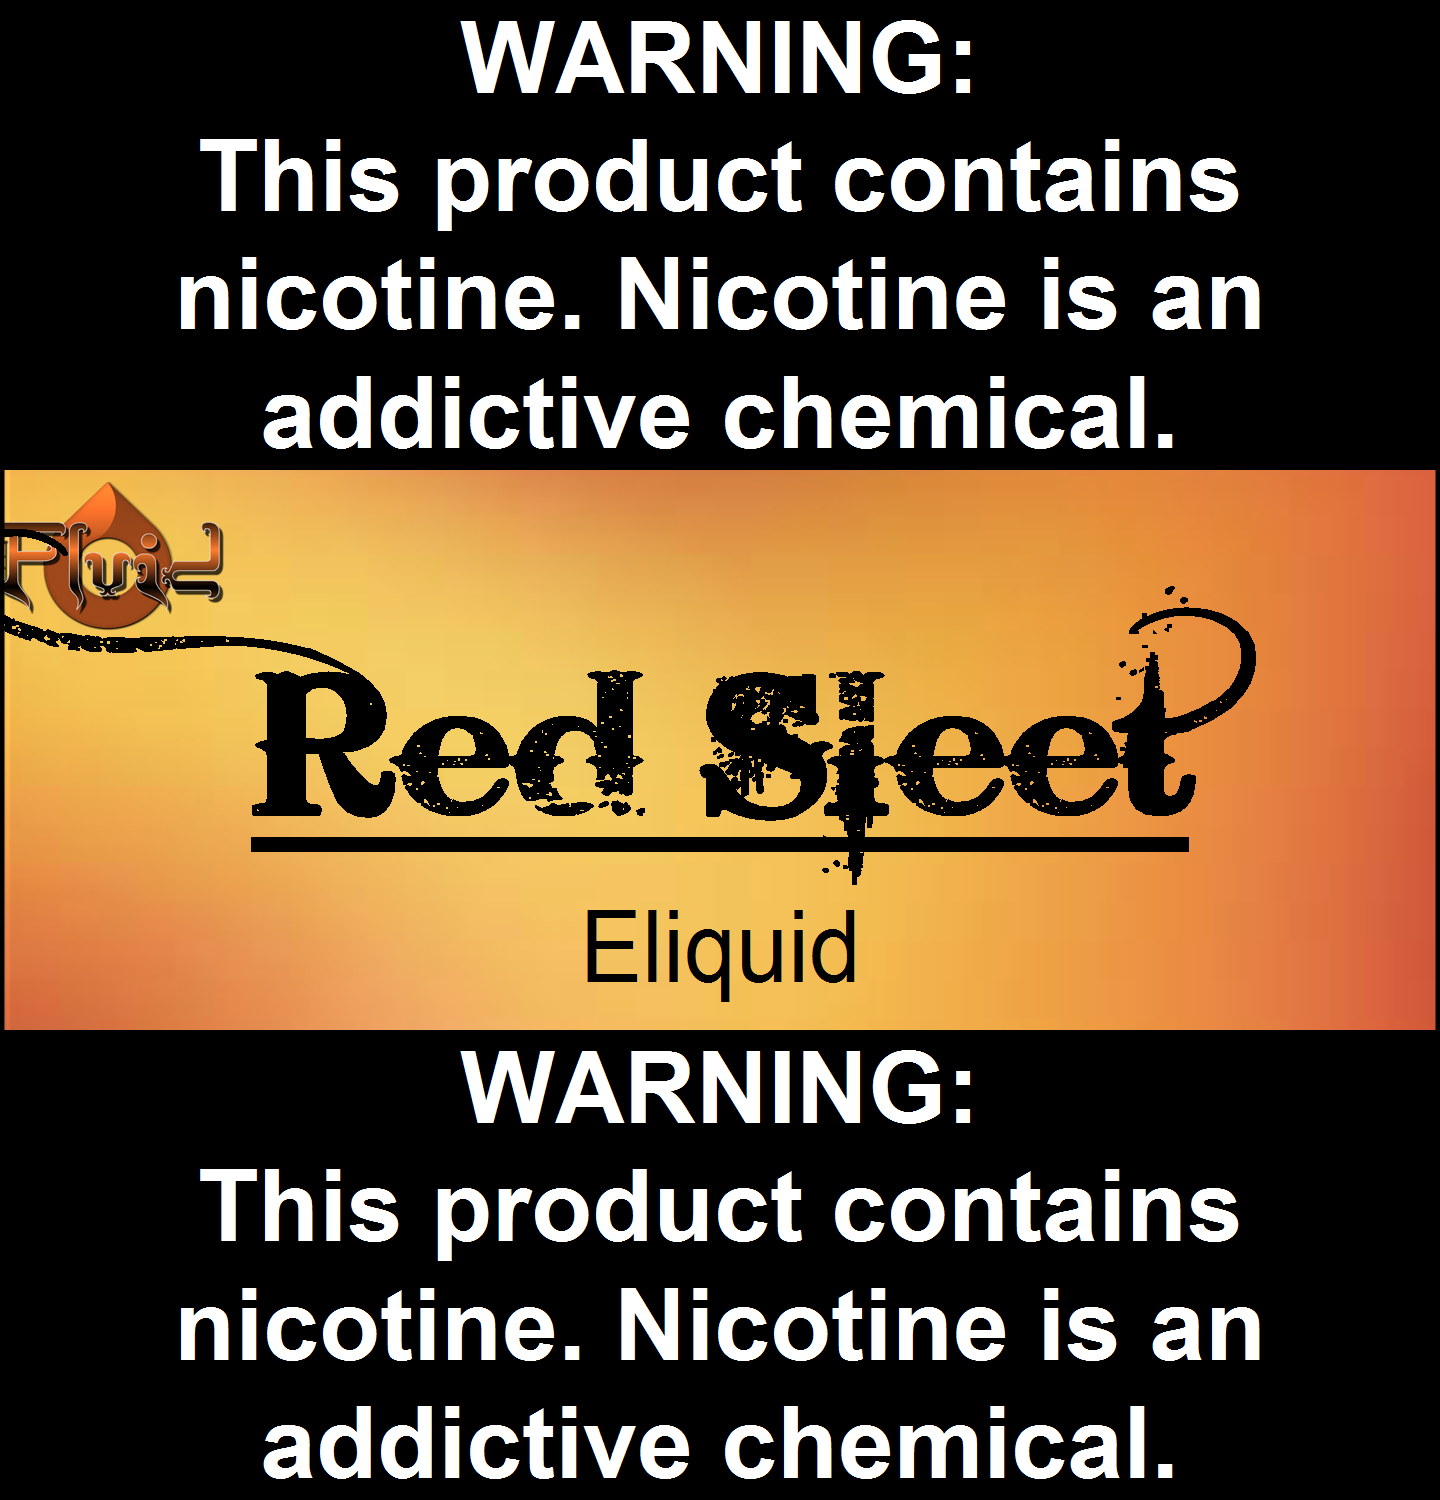 Red Sleet Eliquid